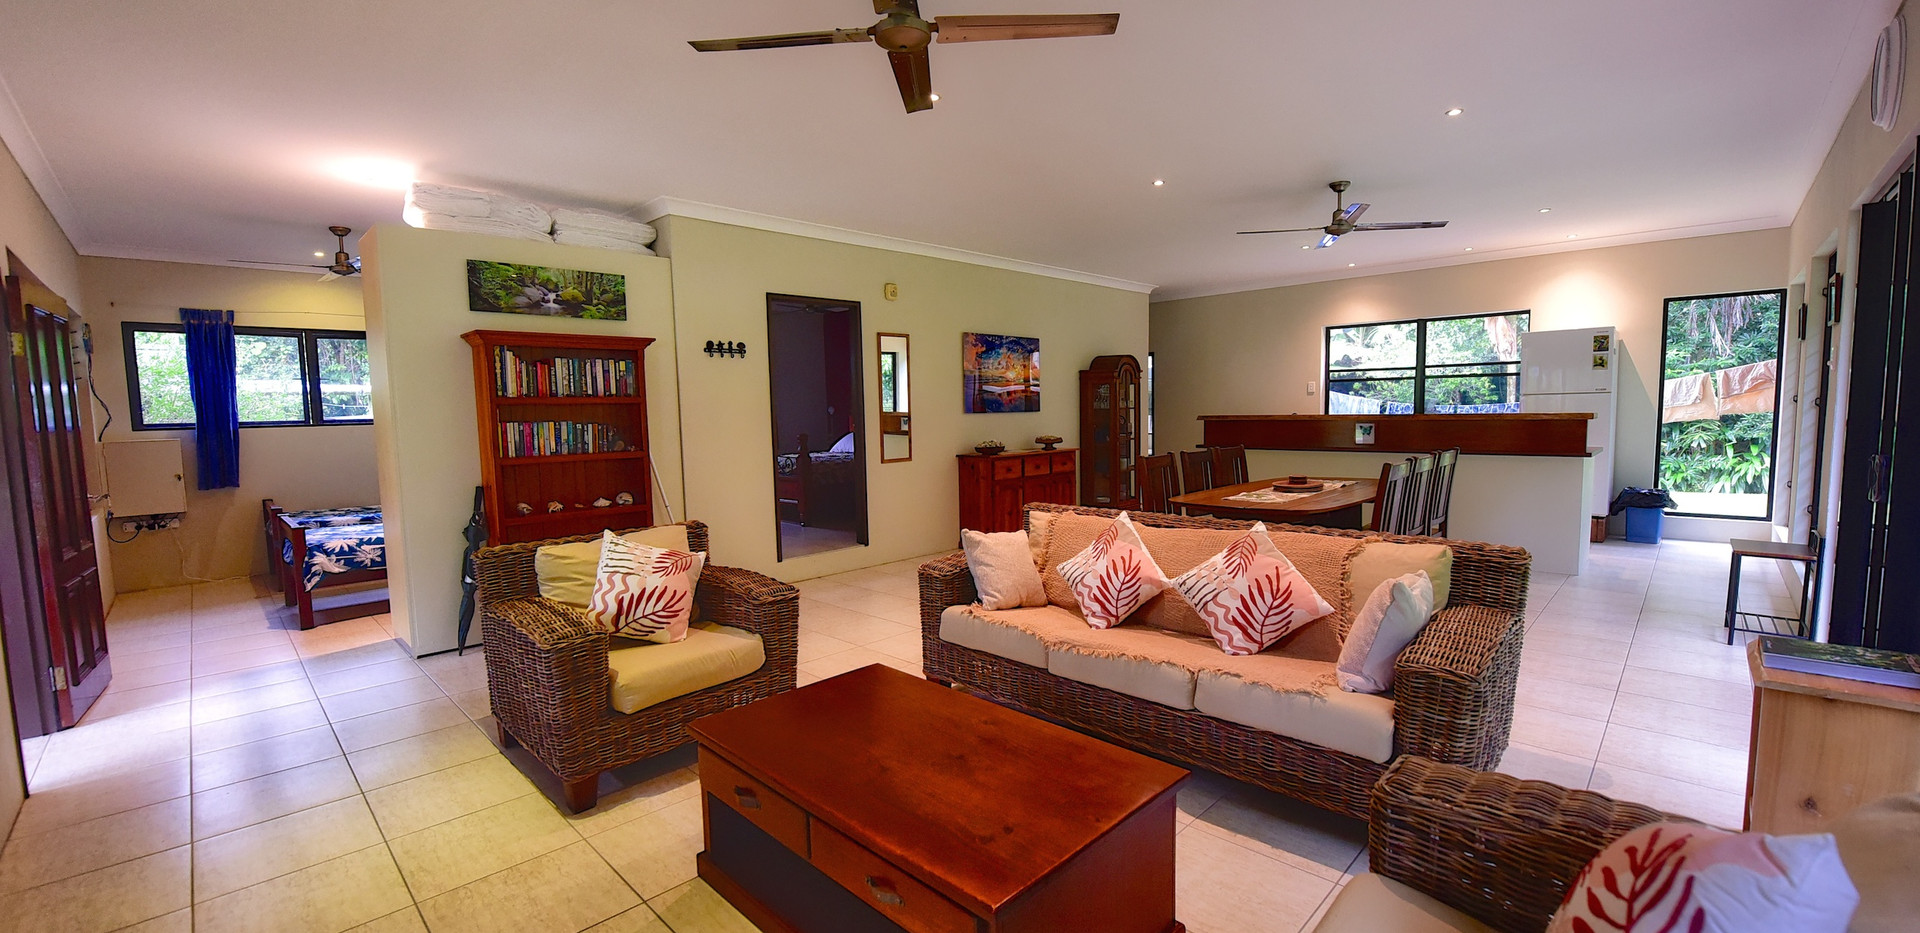 Big Bungalow open plan living area